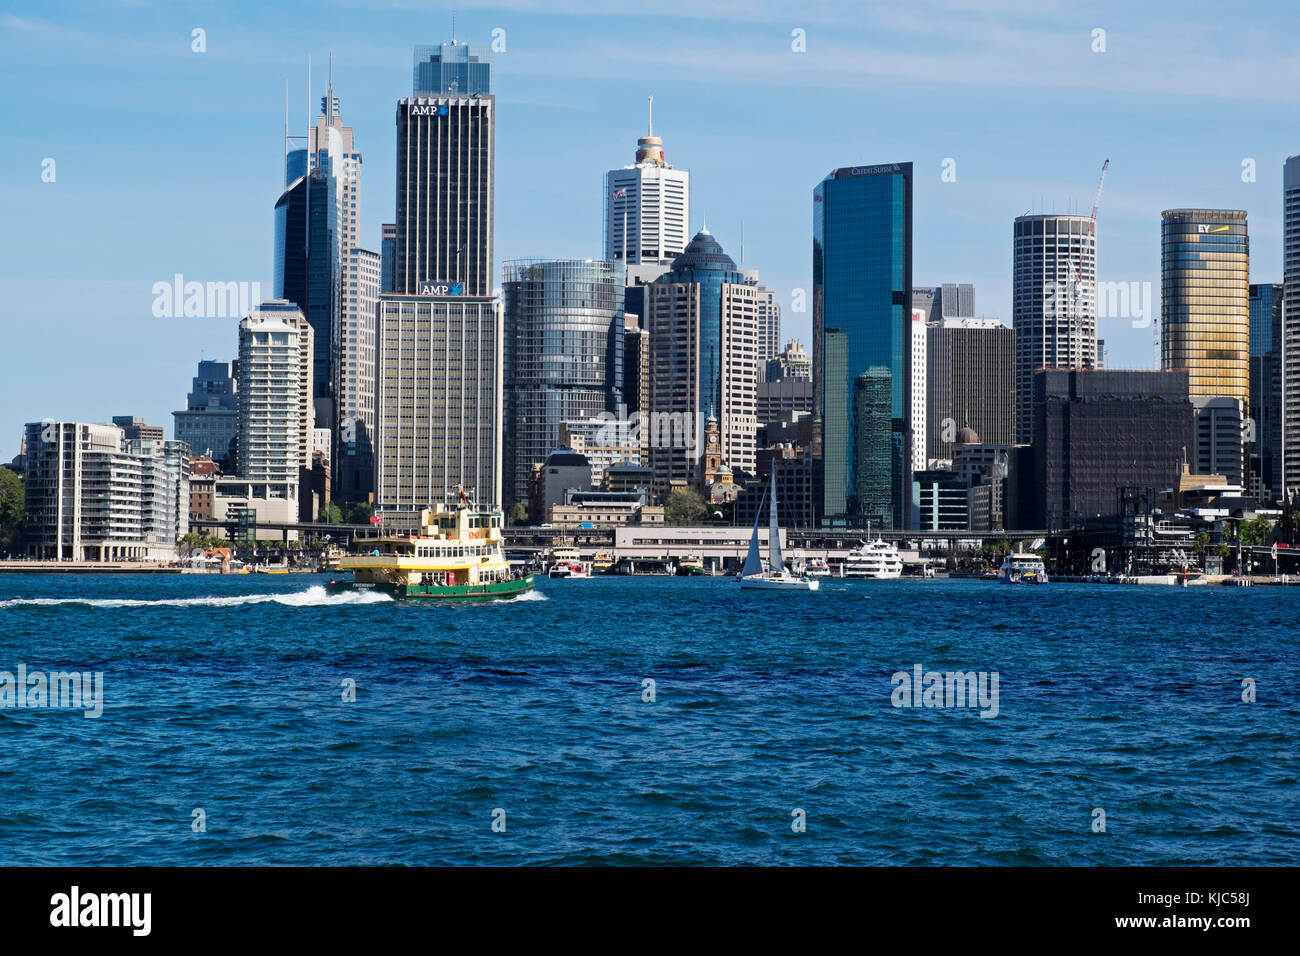 Ferry boat approaching teminal at  Circular Quay and skyline of Sydney, Australia - Stock Image